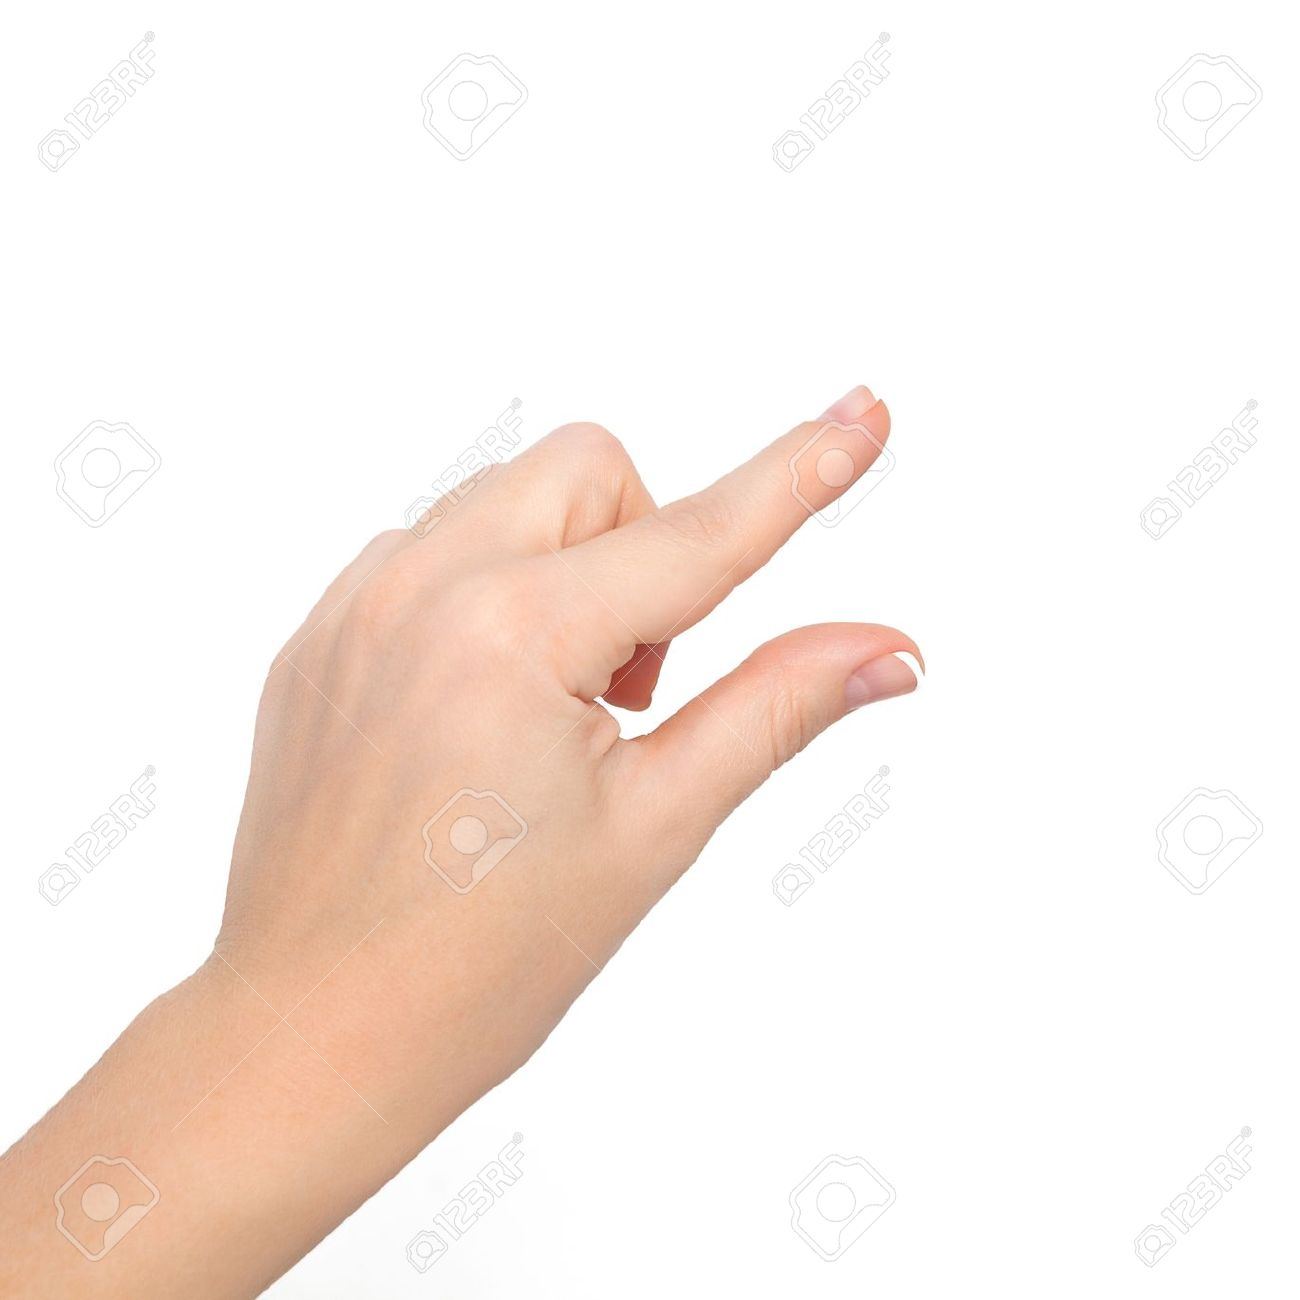 Isolated Woman Hand Shows The Pinch To Zoom Or Holding The Object Stock Photo Picture And Royalty Free Image Image 16798991 Free hand signs clipart pictures png. isolated woman hand shows the pinch to zoom or holding the object